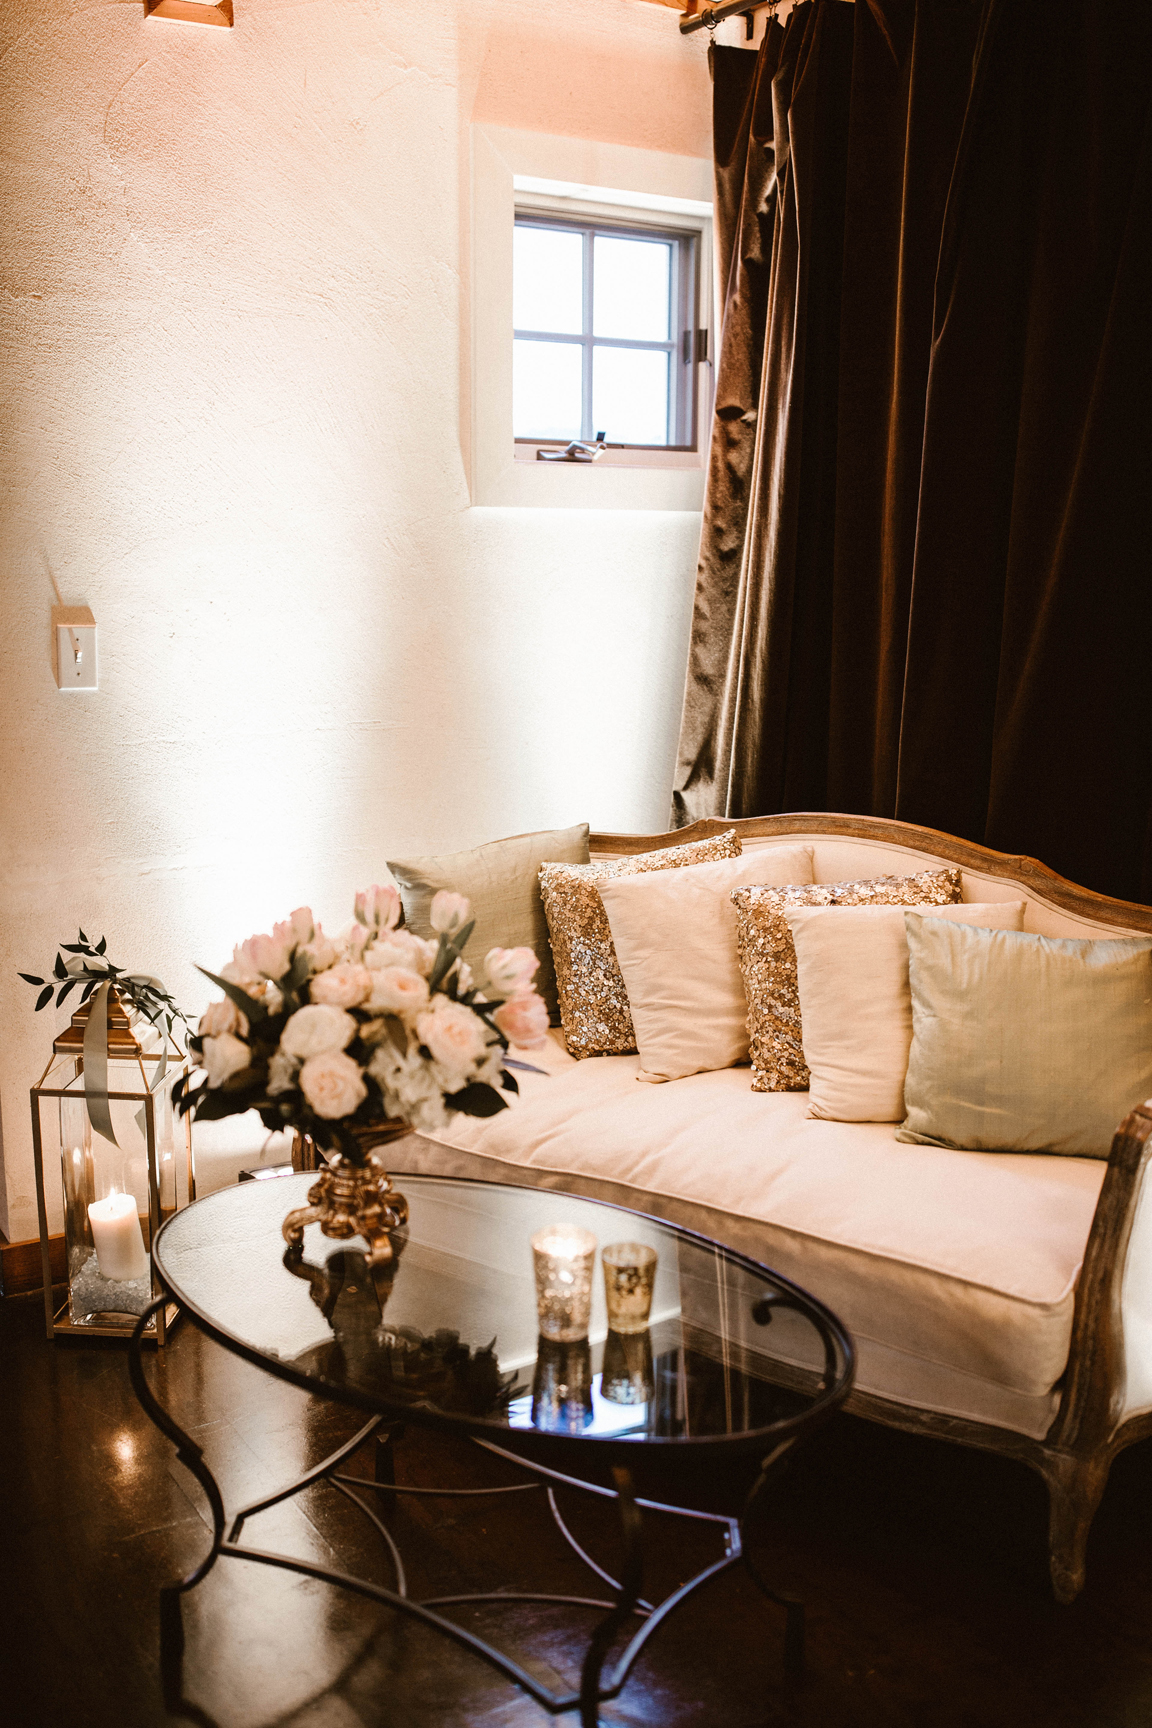 DeLille+Cellars_The+Chateau_Woodinville_2017_Weddings+In+Woodinville130.jpg